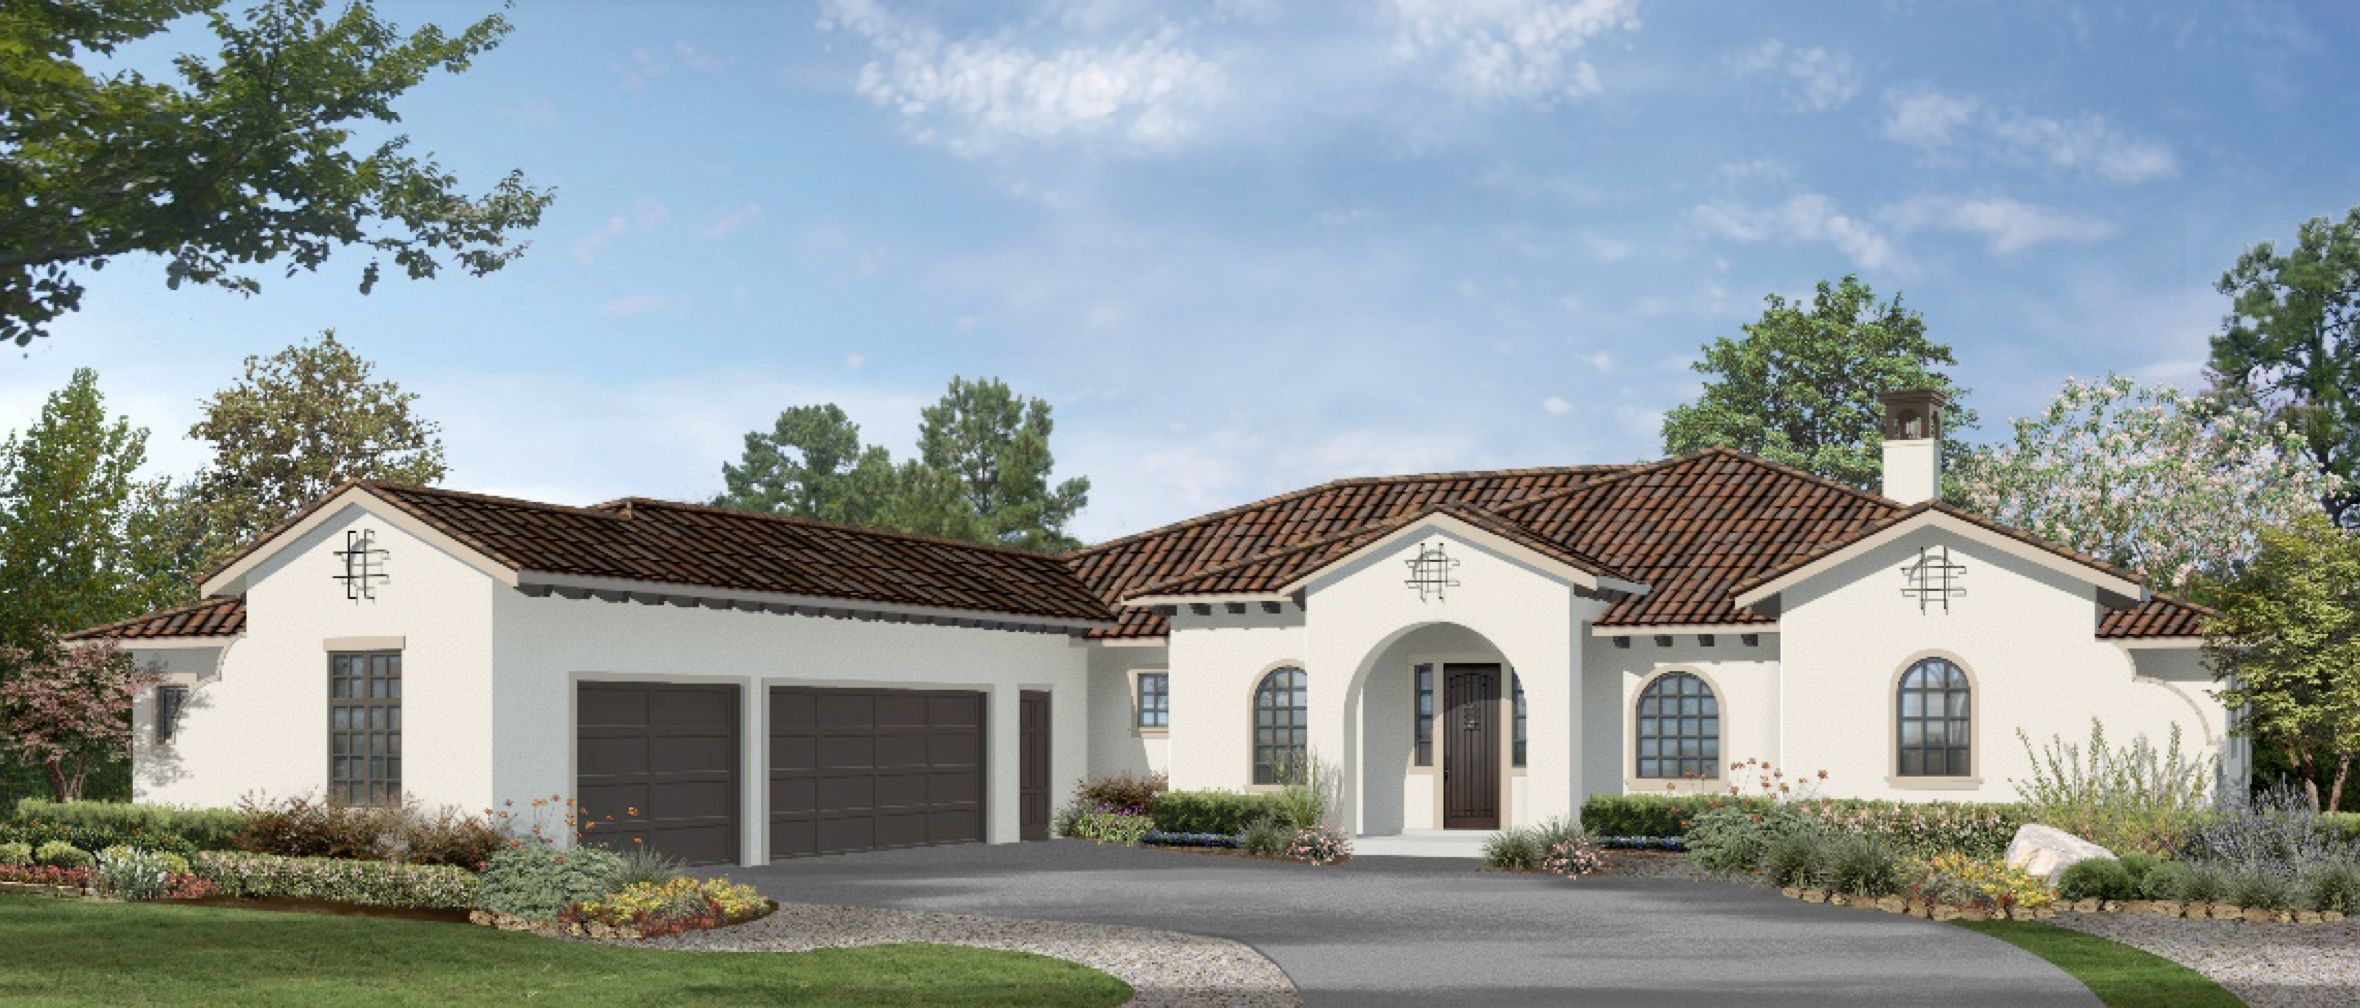 Building a Retirement Home for Aging in Place, the Home of Your Dreams 1